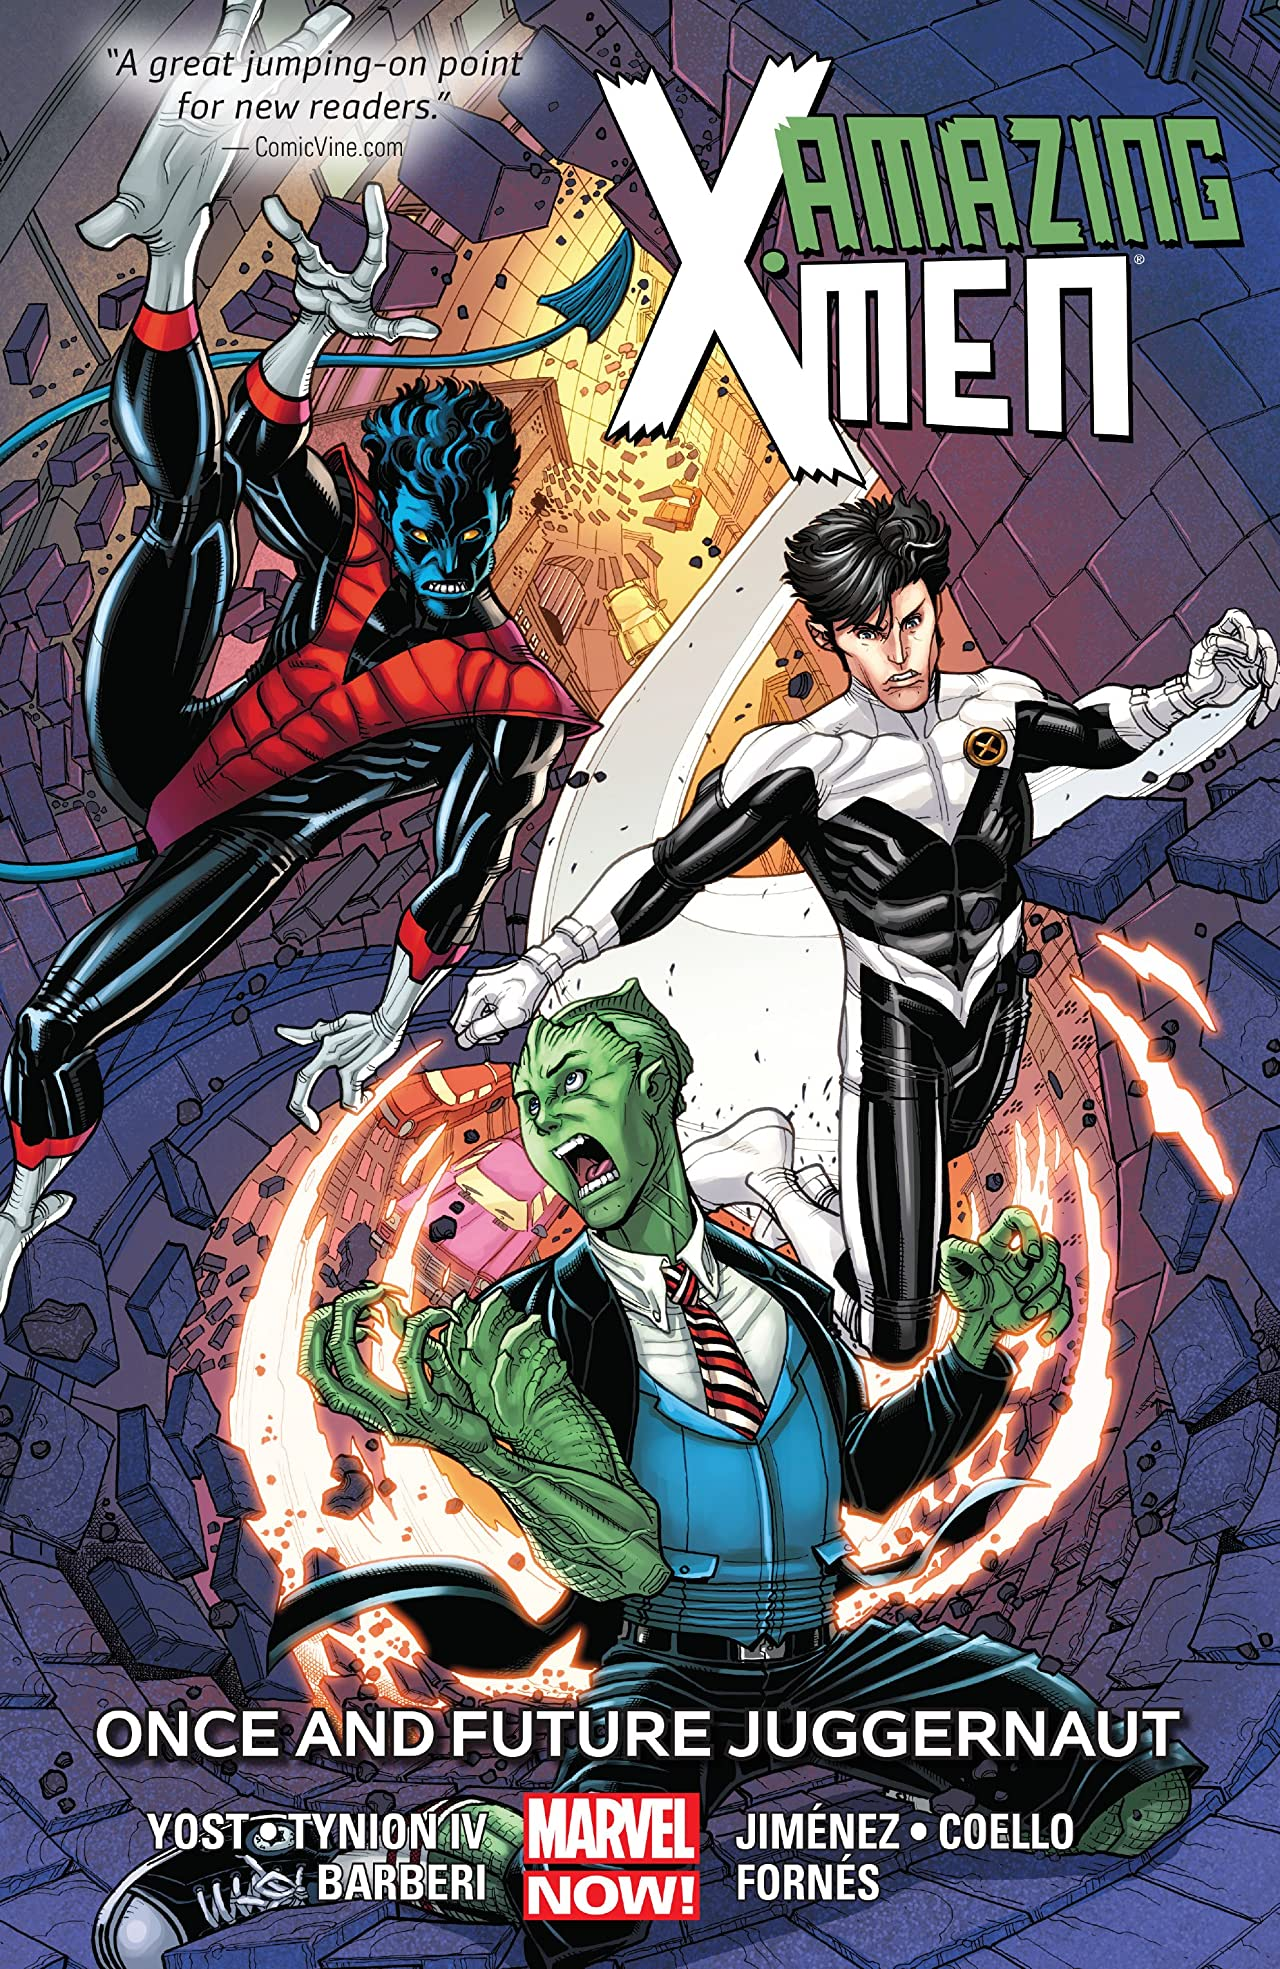 Amazing X-Men Vol. 3: Once and Future Juggernaut